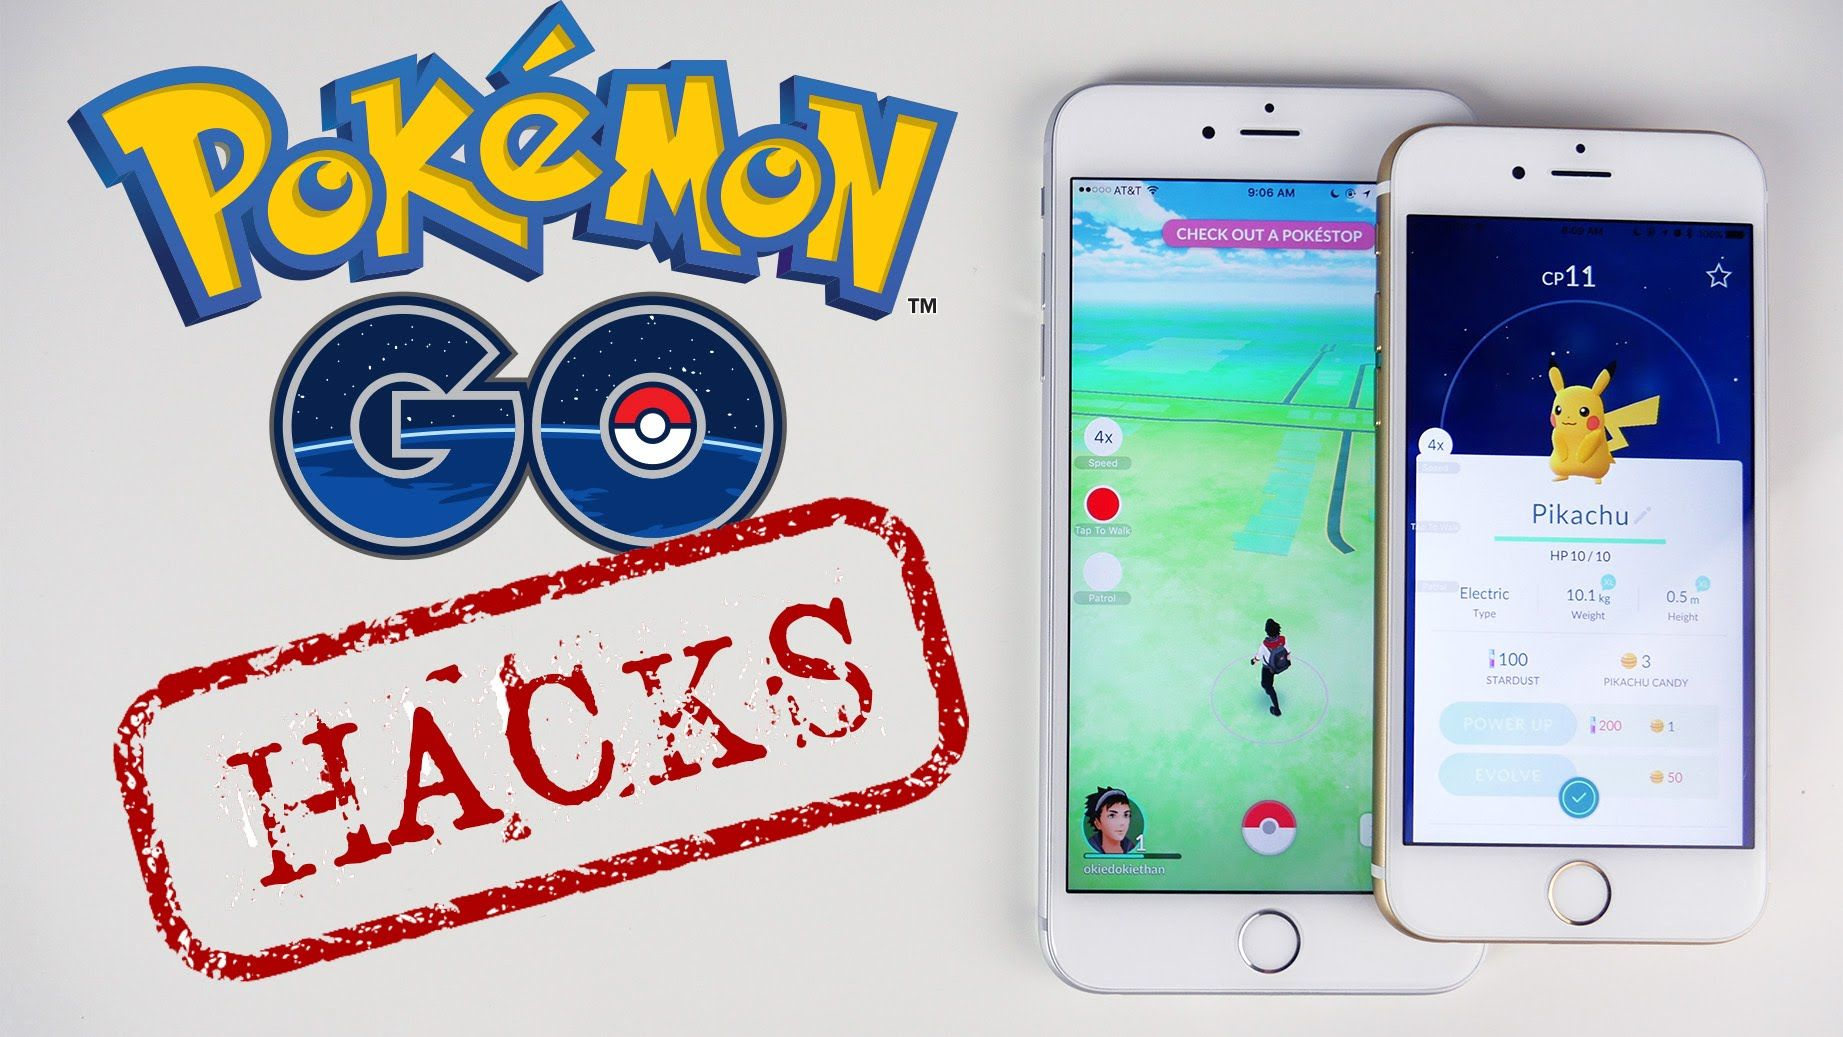 Free Pokemon Go tool to generate unlimited Pokecoins and more! http://pokemongohack.de